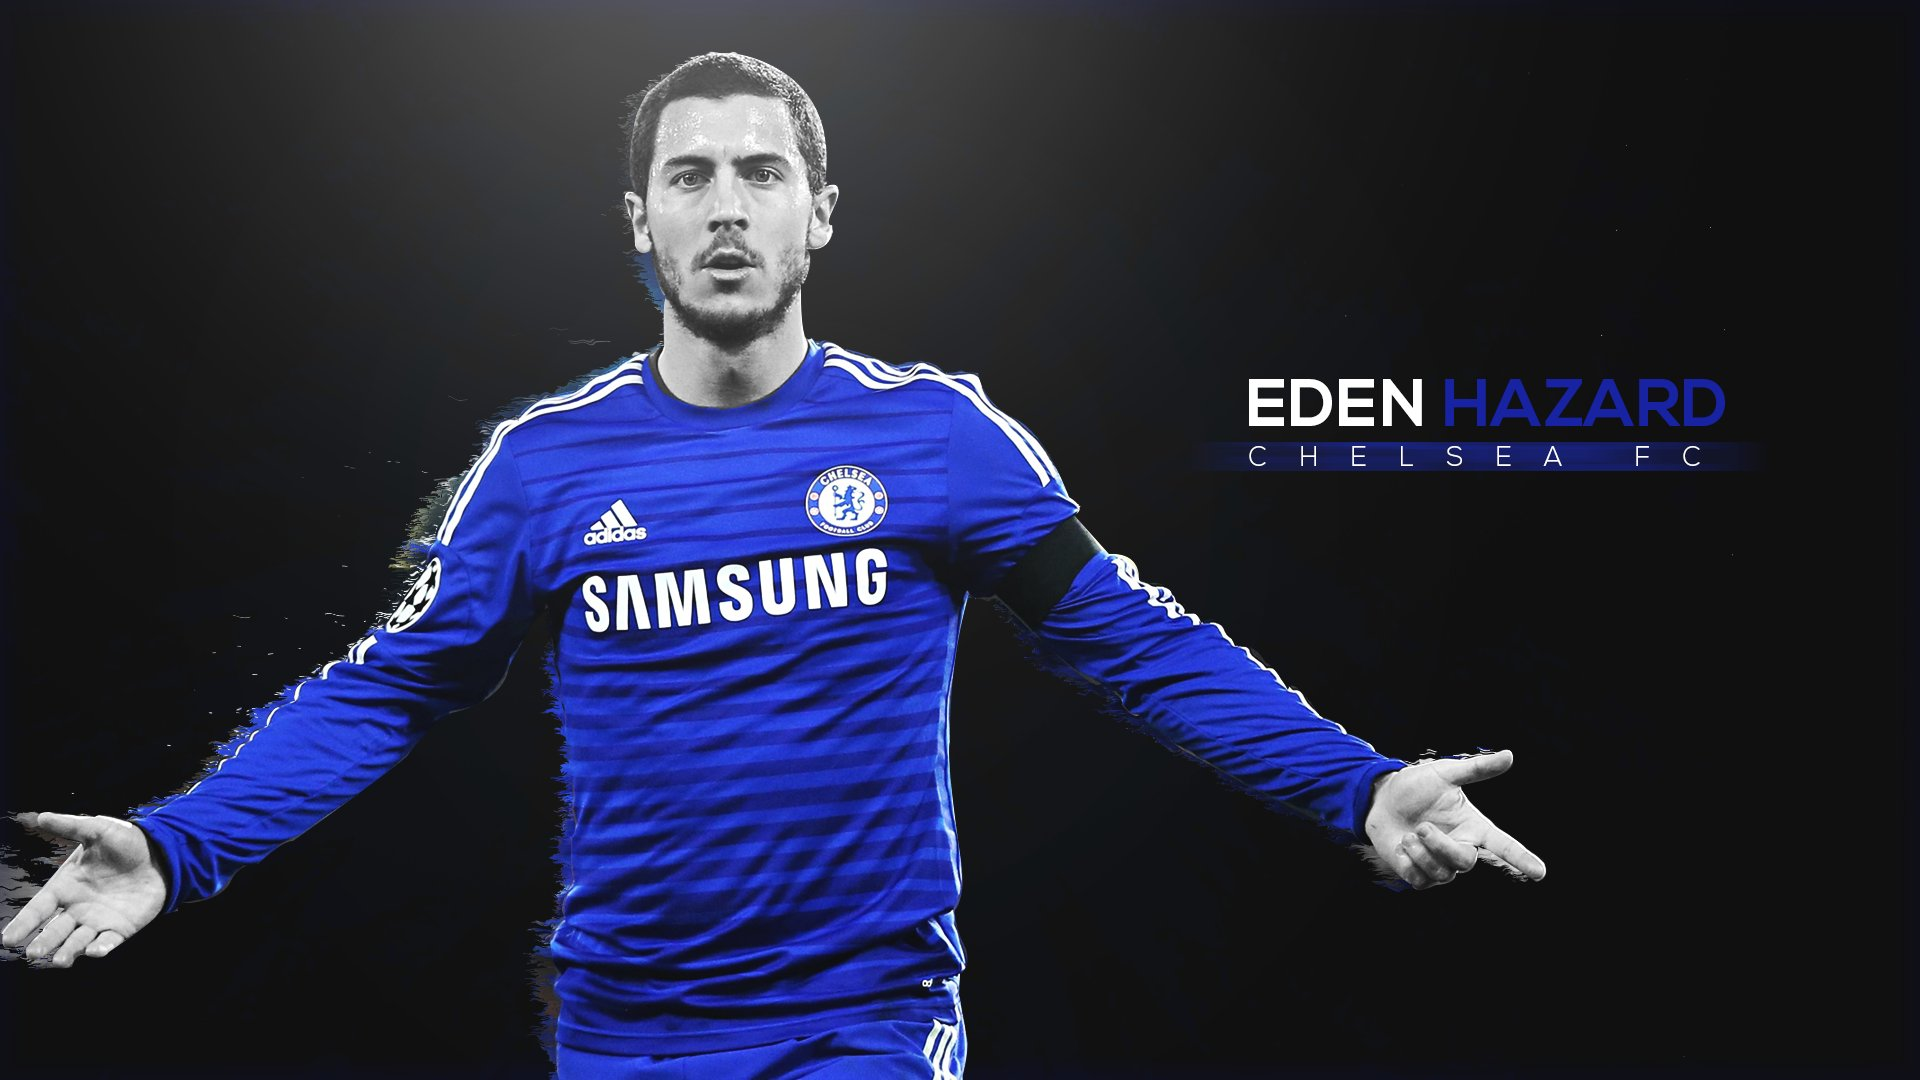 Eden Hazard Wallpaper - impremedia.net